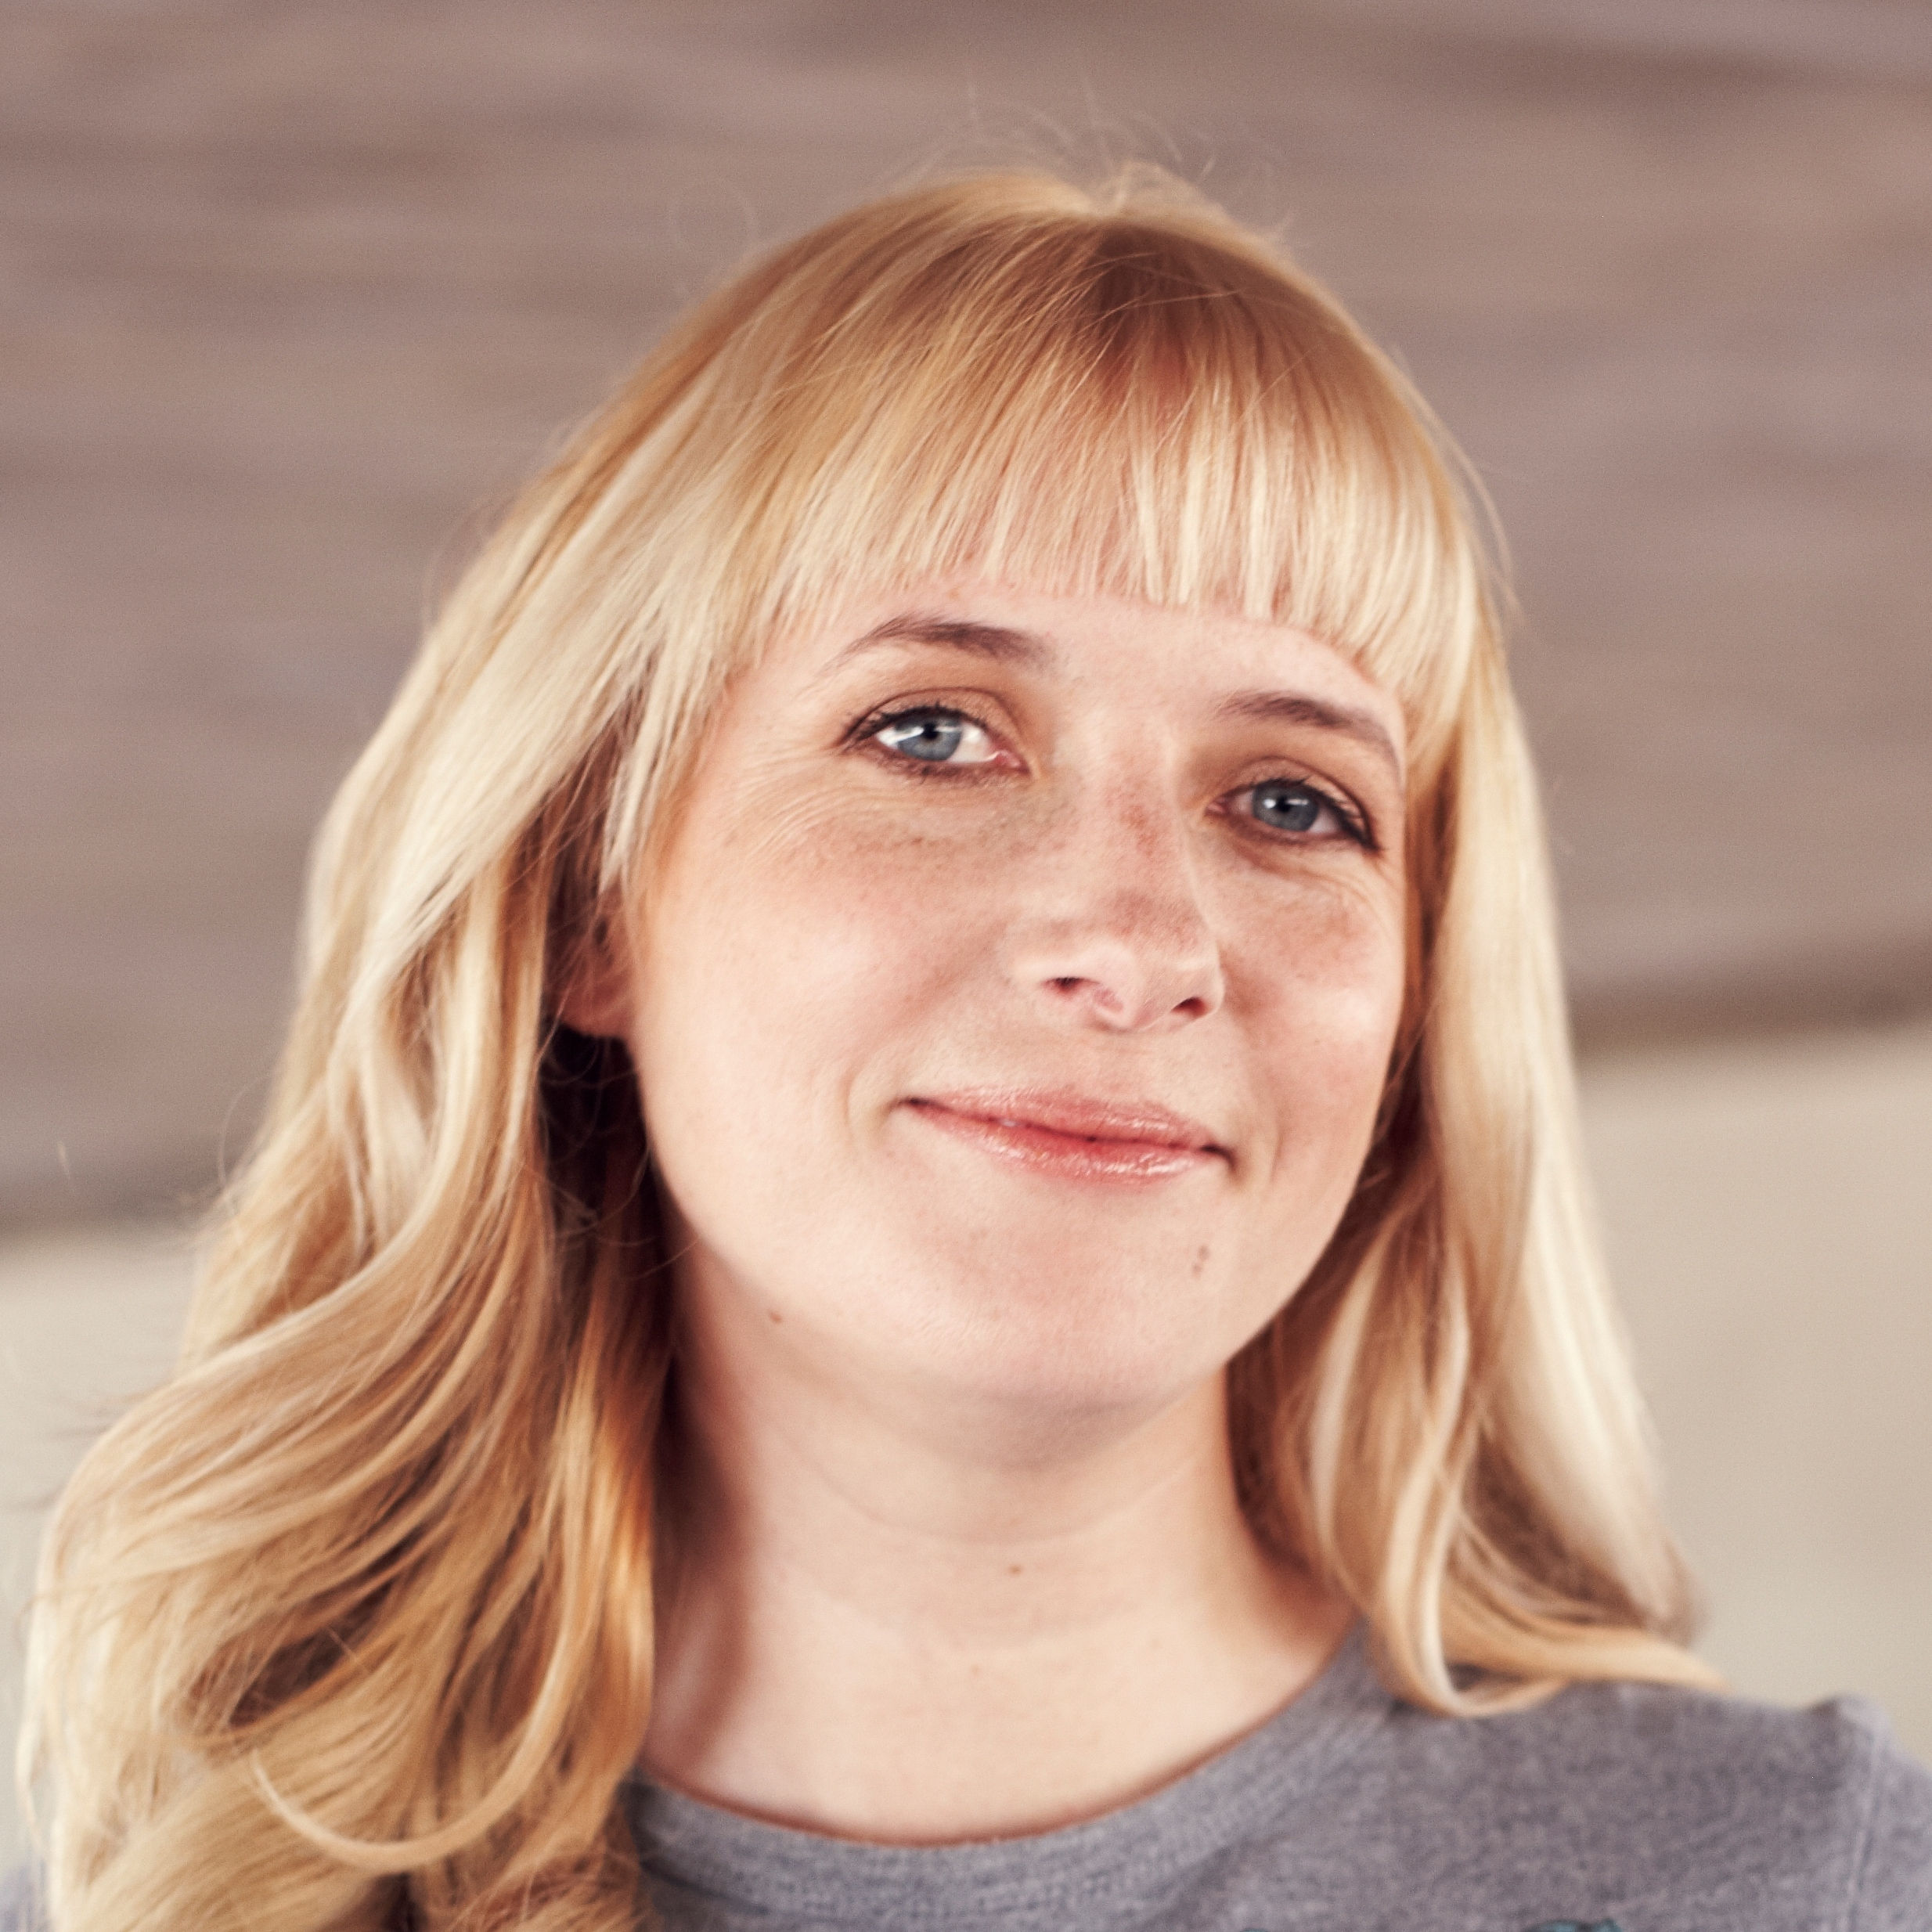 Lauren Beukes is a South African author. She is currently adapting a previous novel, Zoo City, into a screenplay.